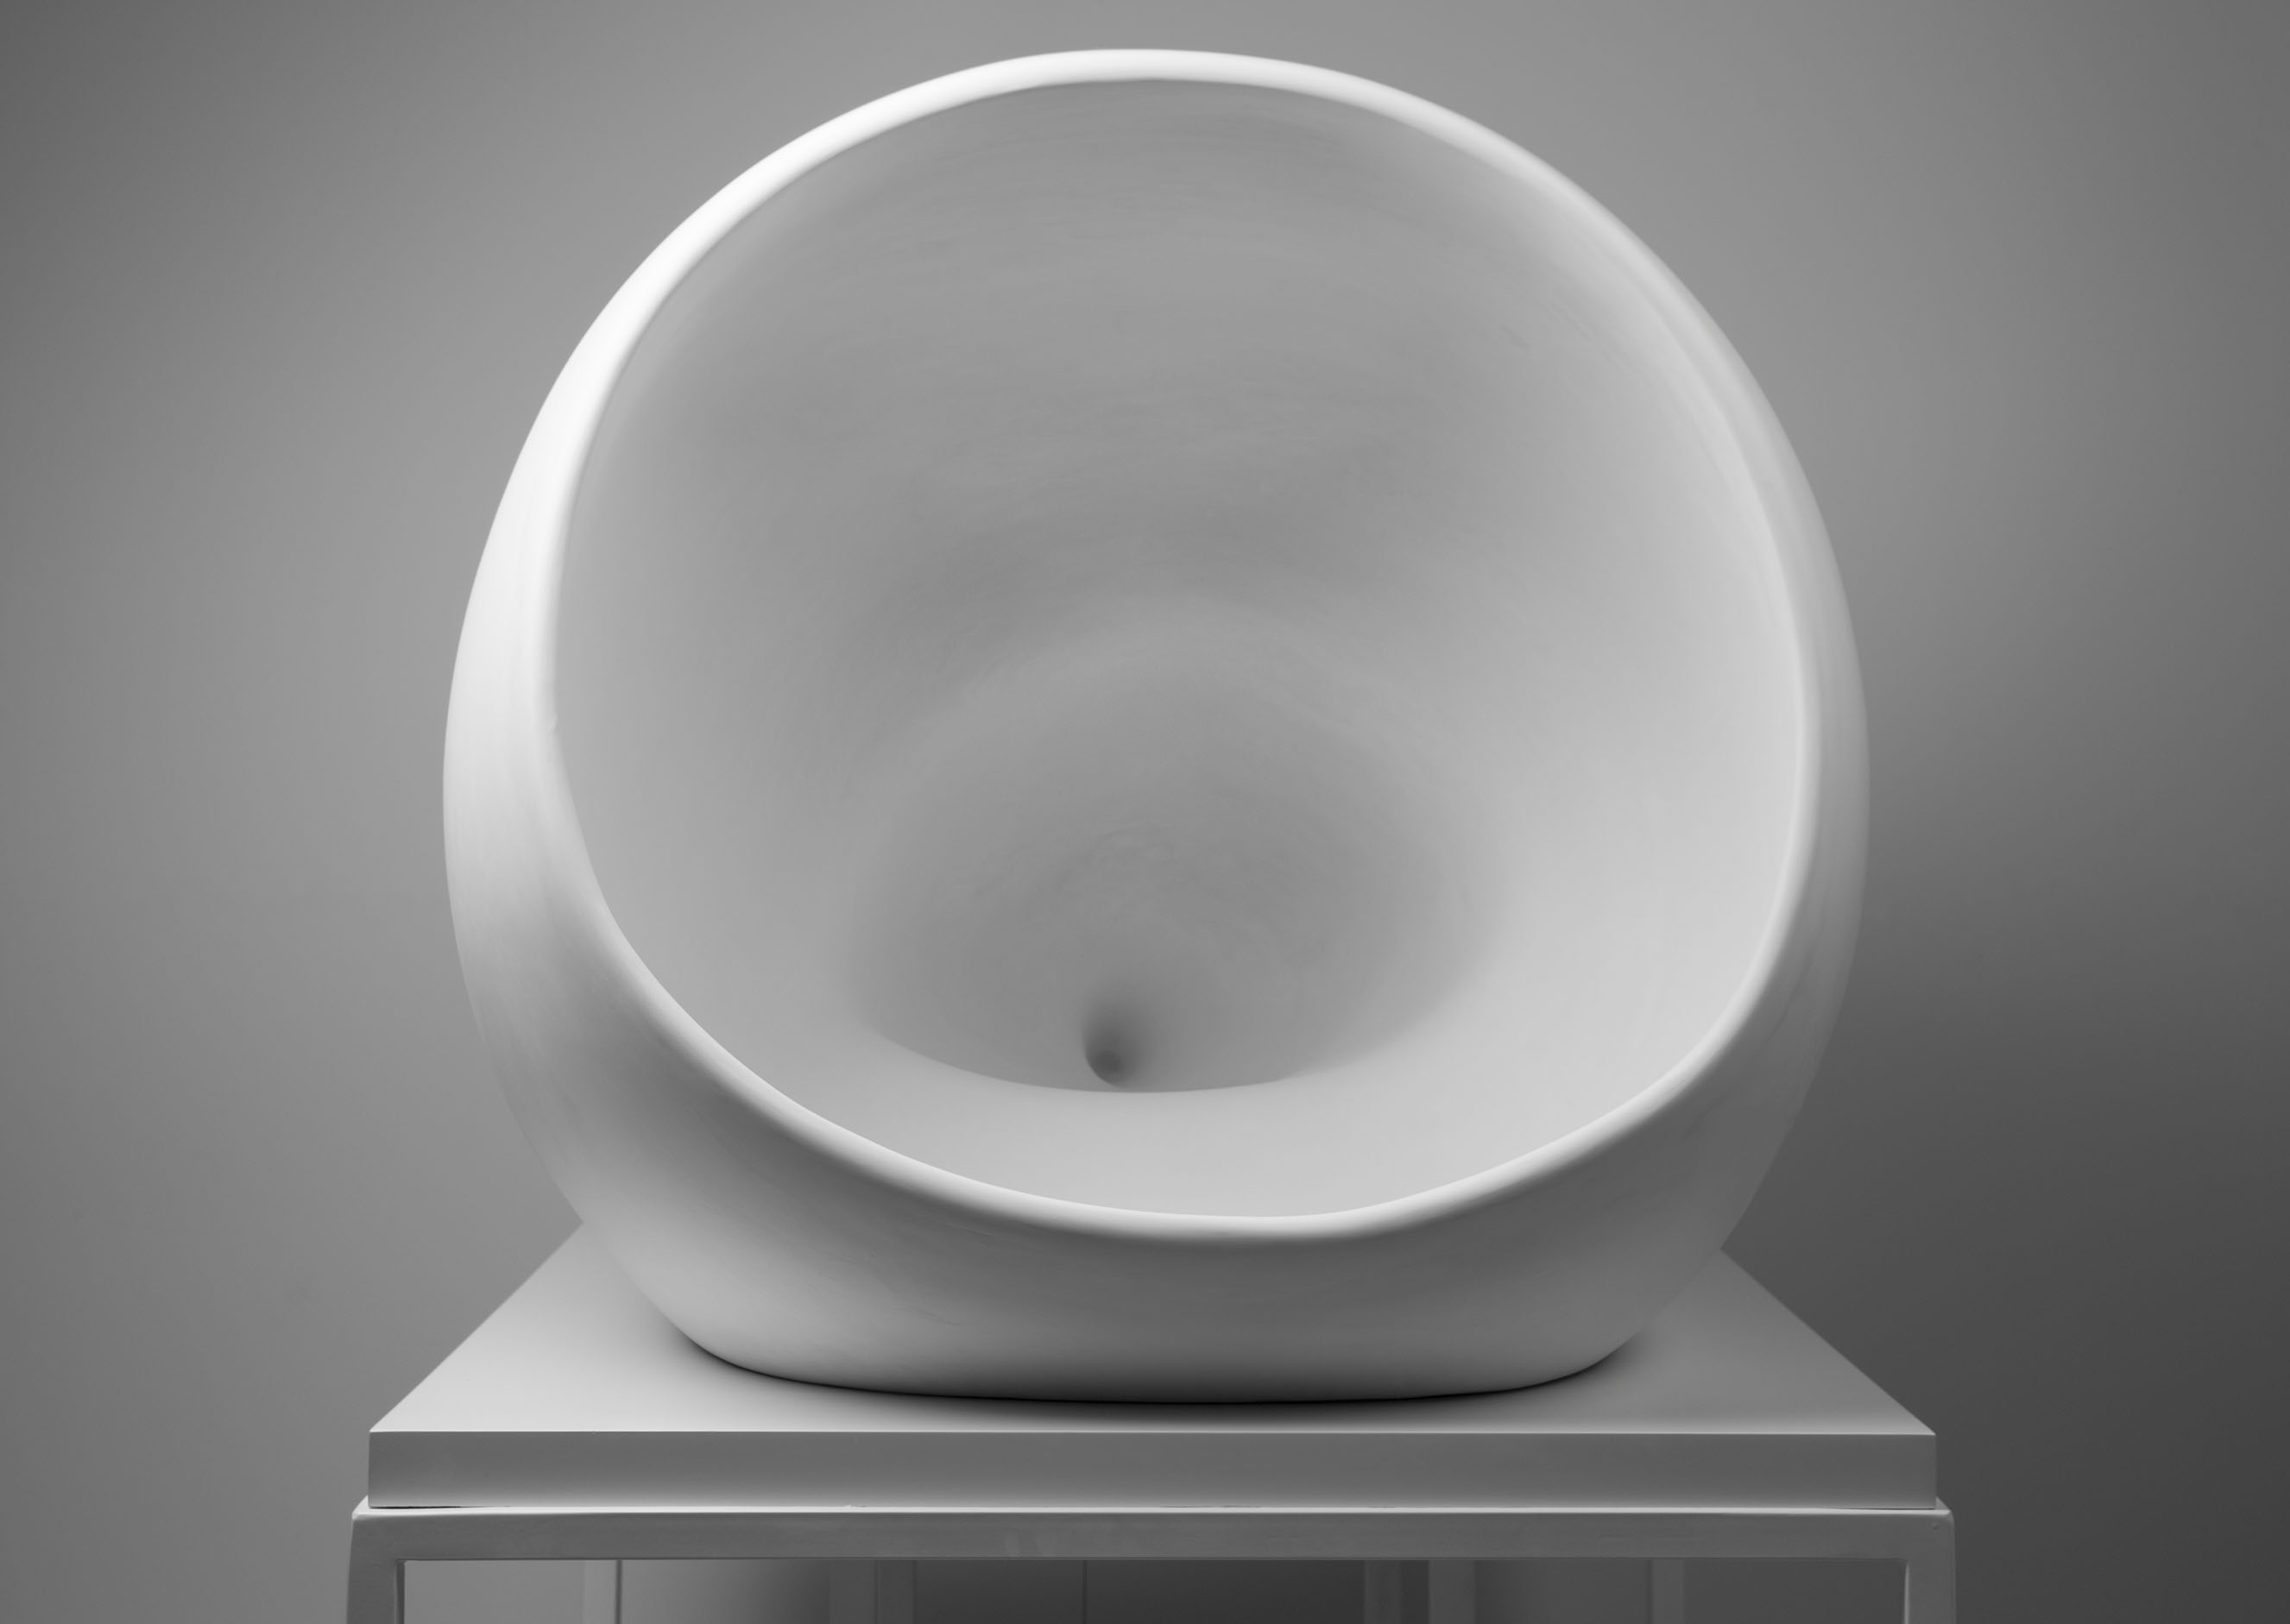 dominique-edwards-a-constant-hum-plaster-of-paris-780mm-x-820mm-x-900mm-2019